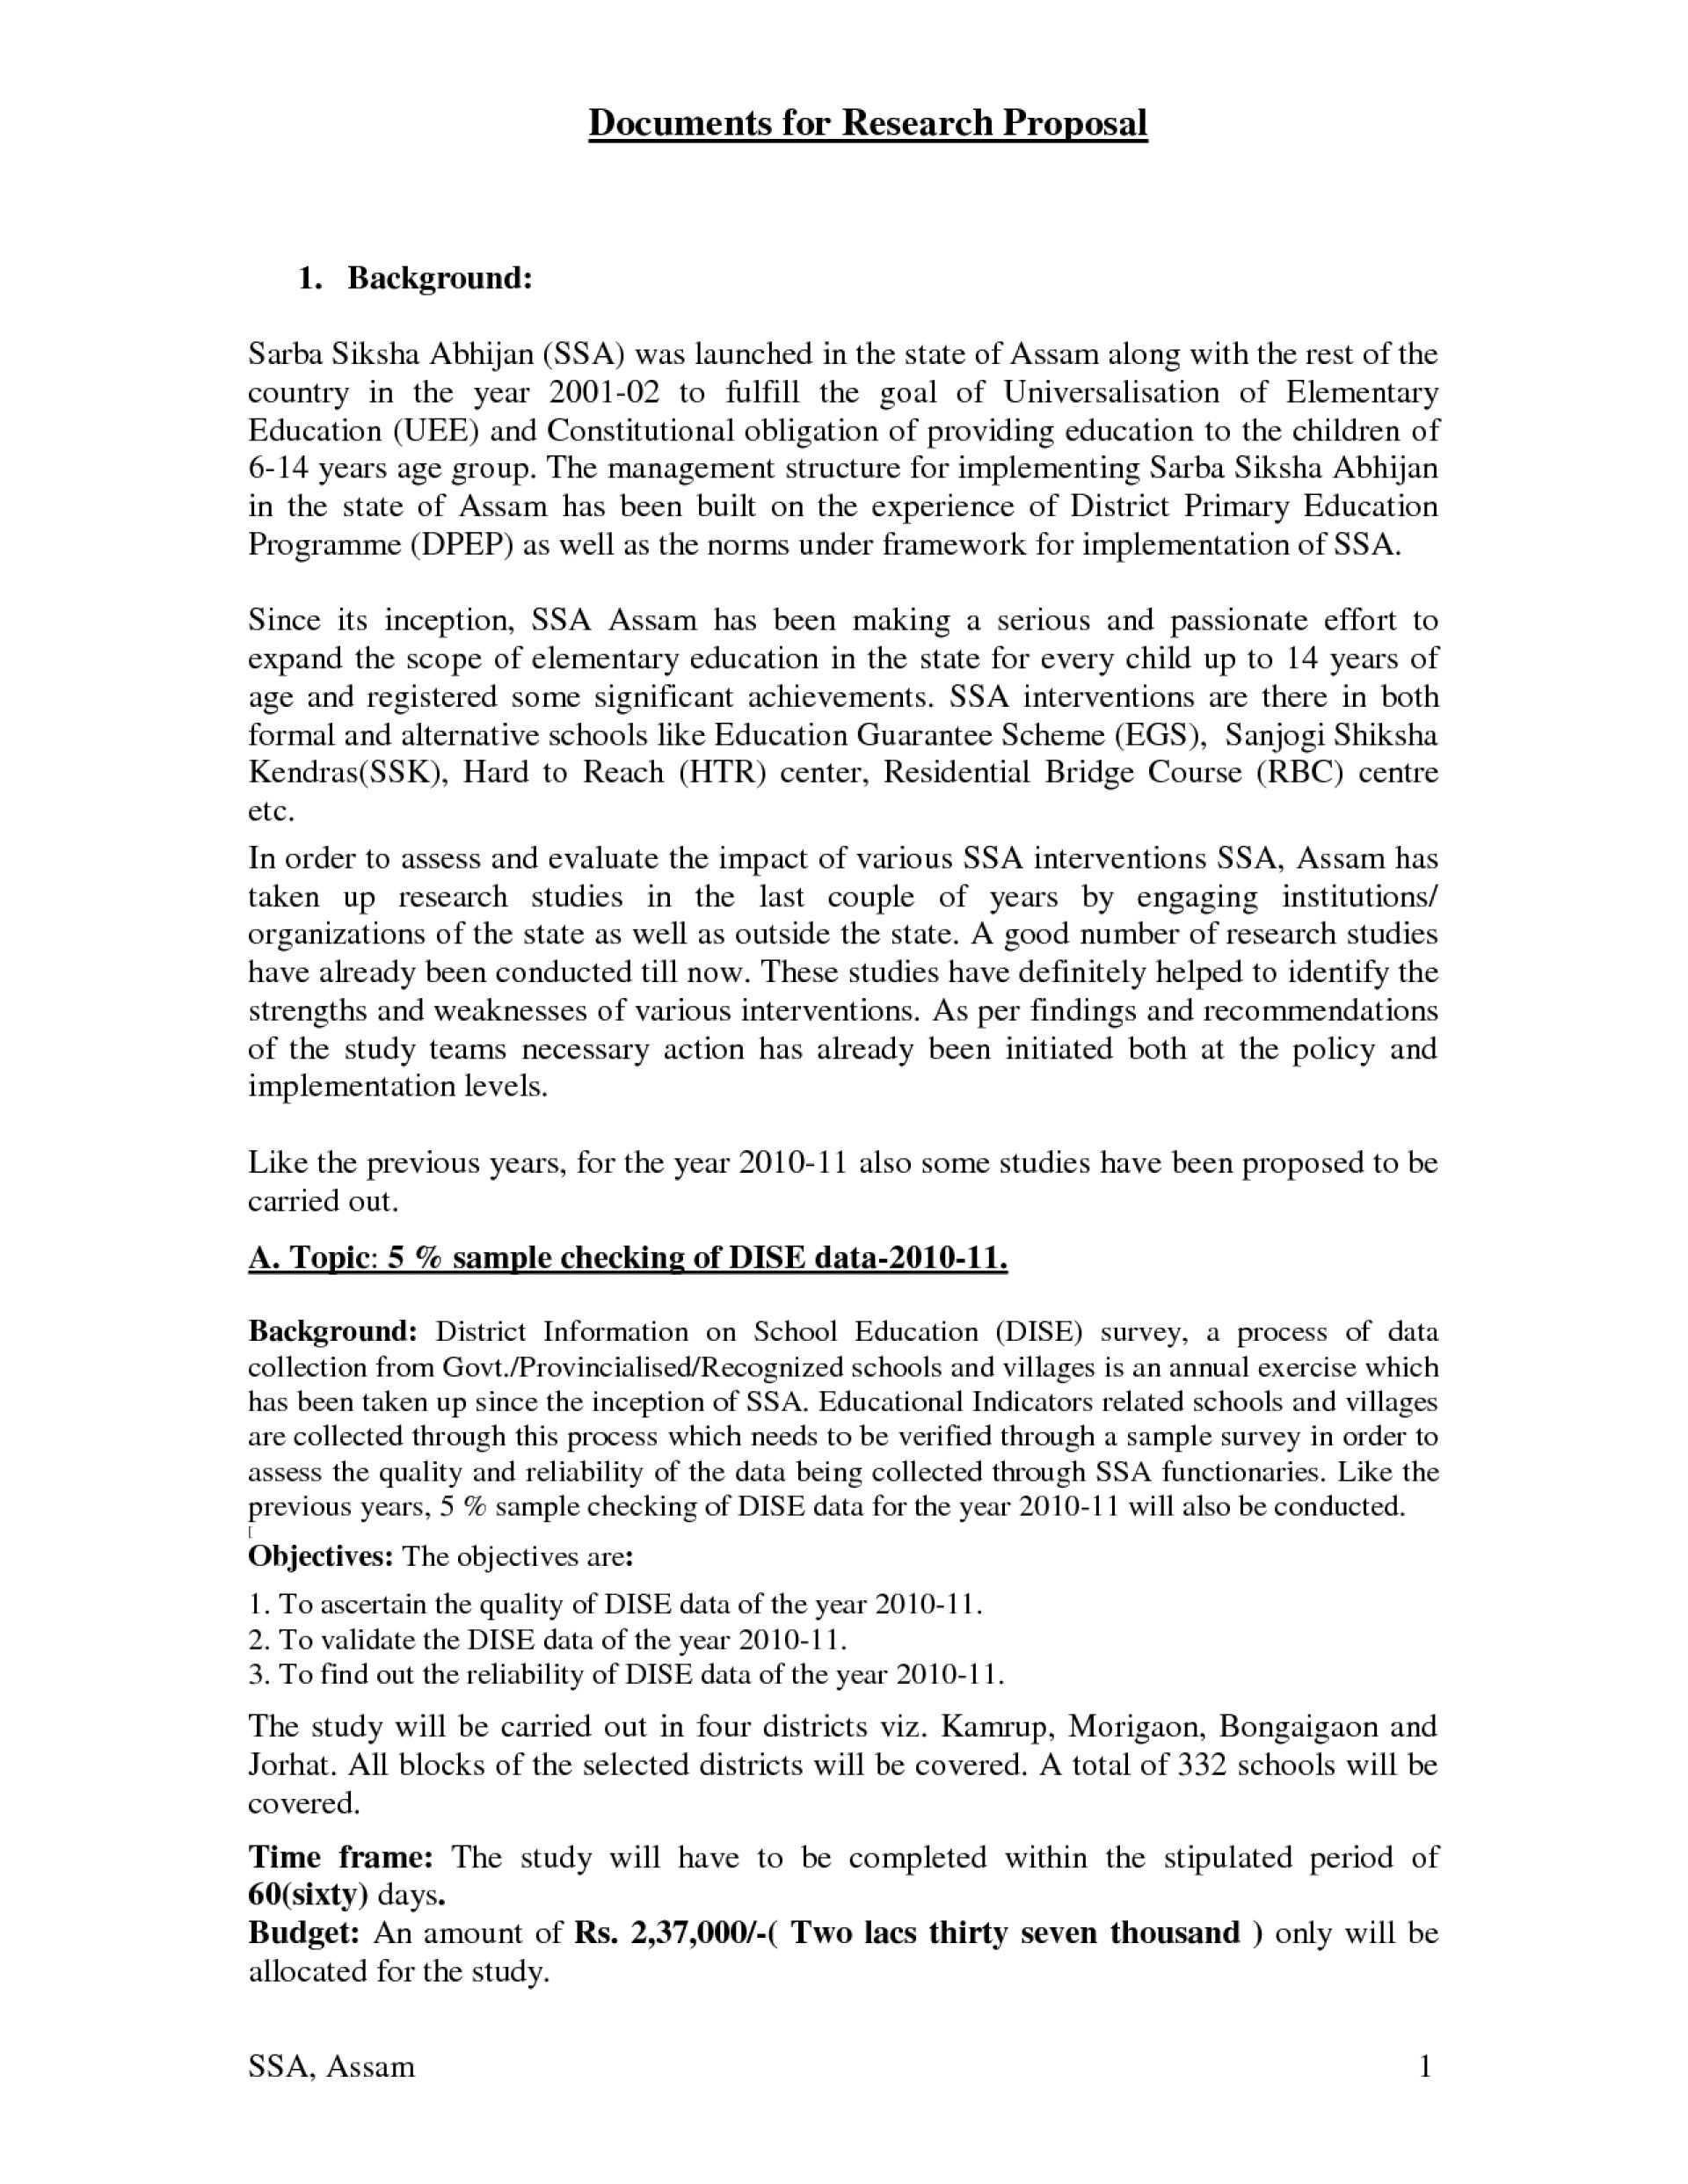 012 Research Paper Proposal Sample Topic 501313 Awesome Plan Template Mla Format 1920